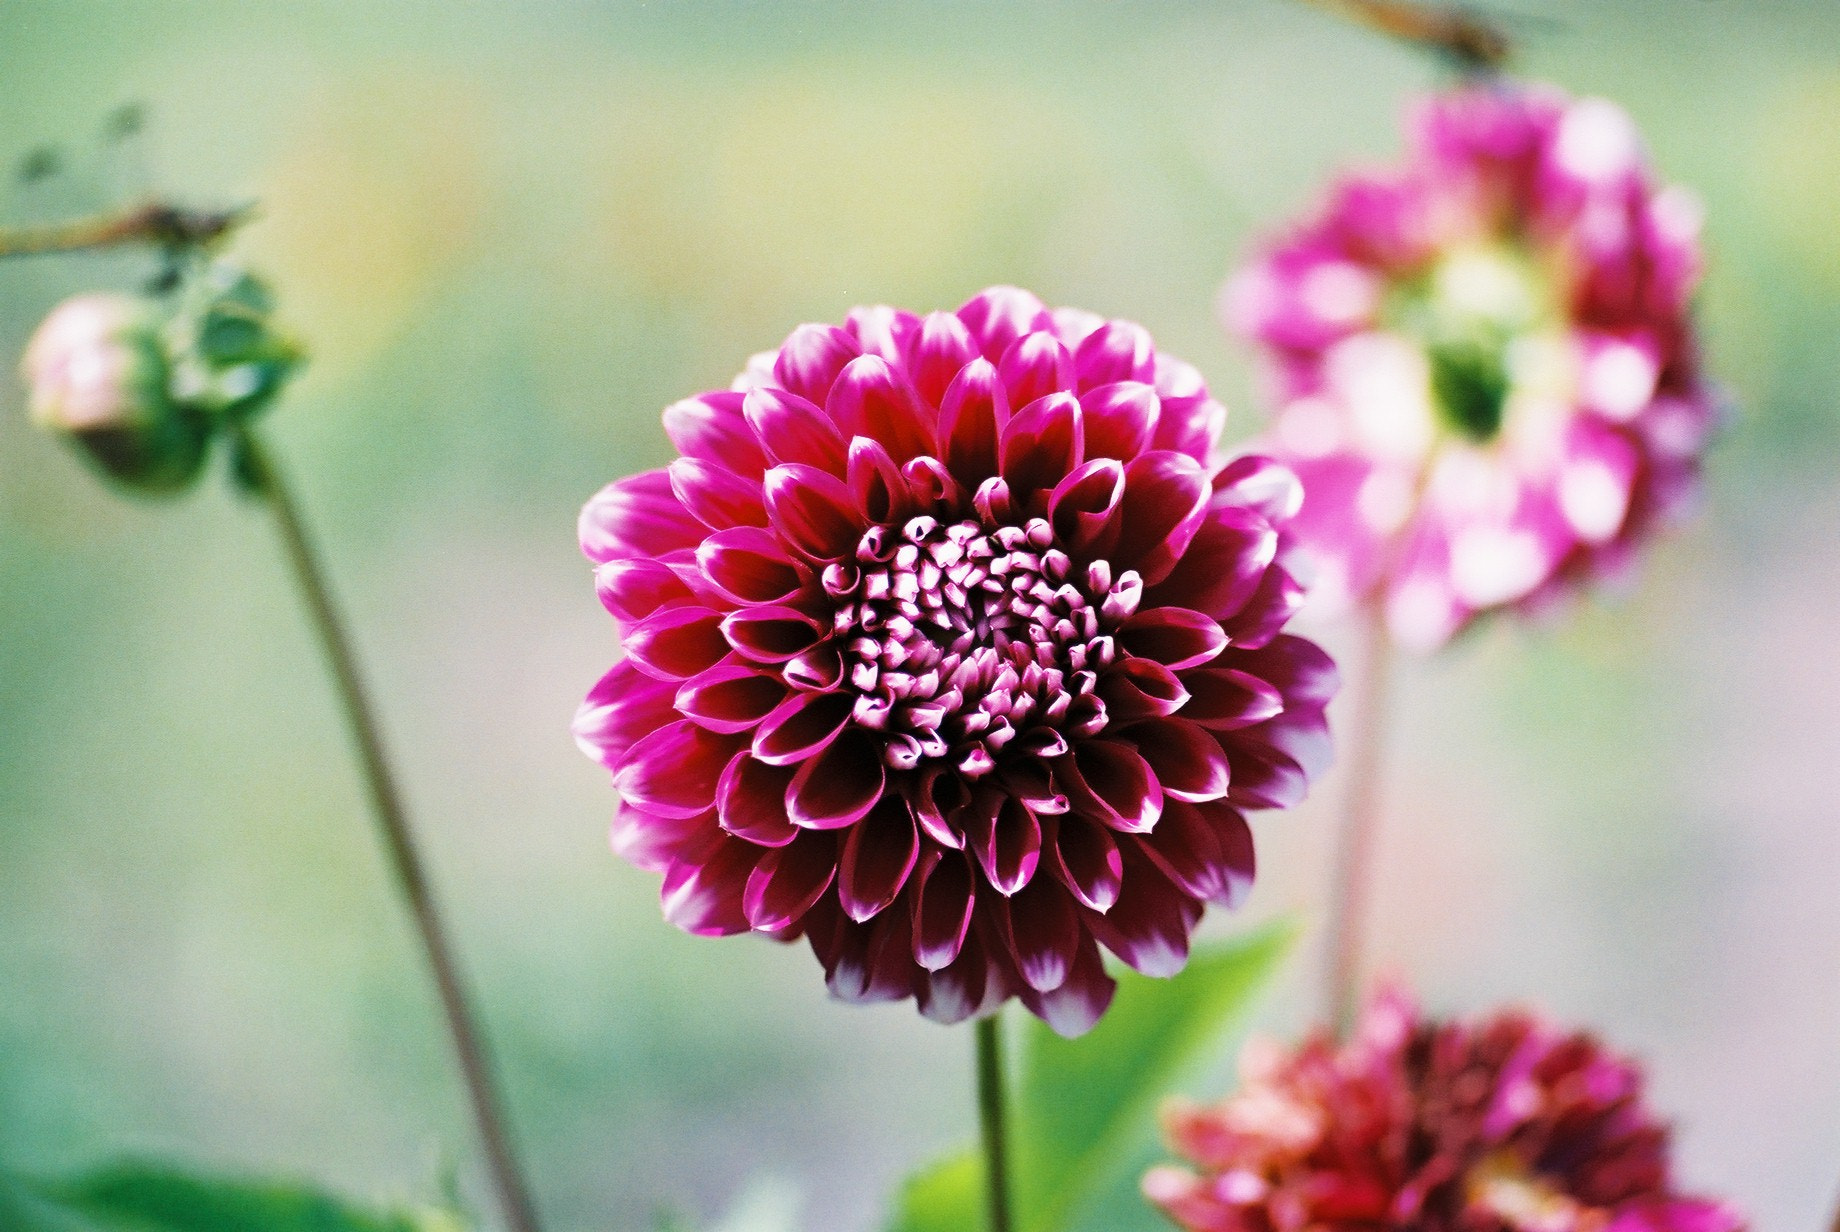 Photograph Dahlia by masae ito on 500px